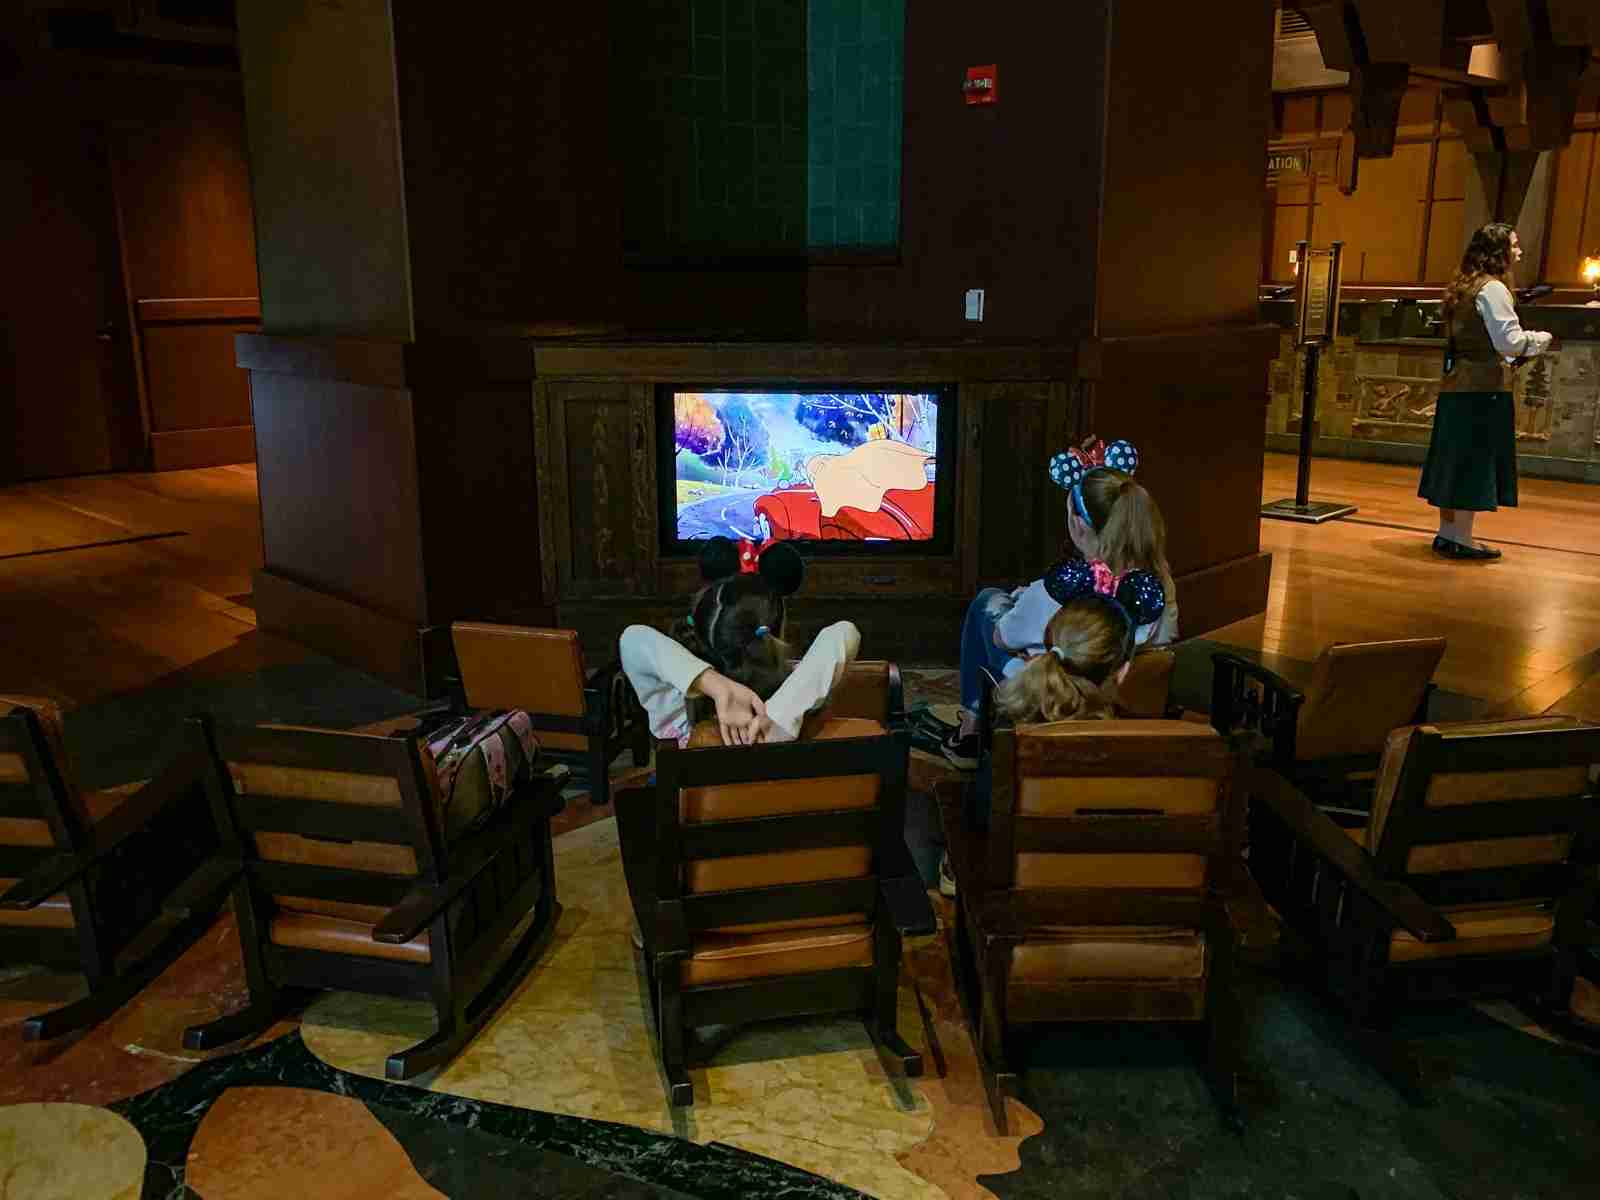 Disneyland Grand Californian Hotel TV Lobby